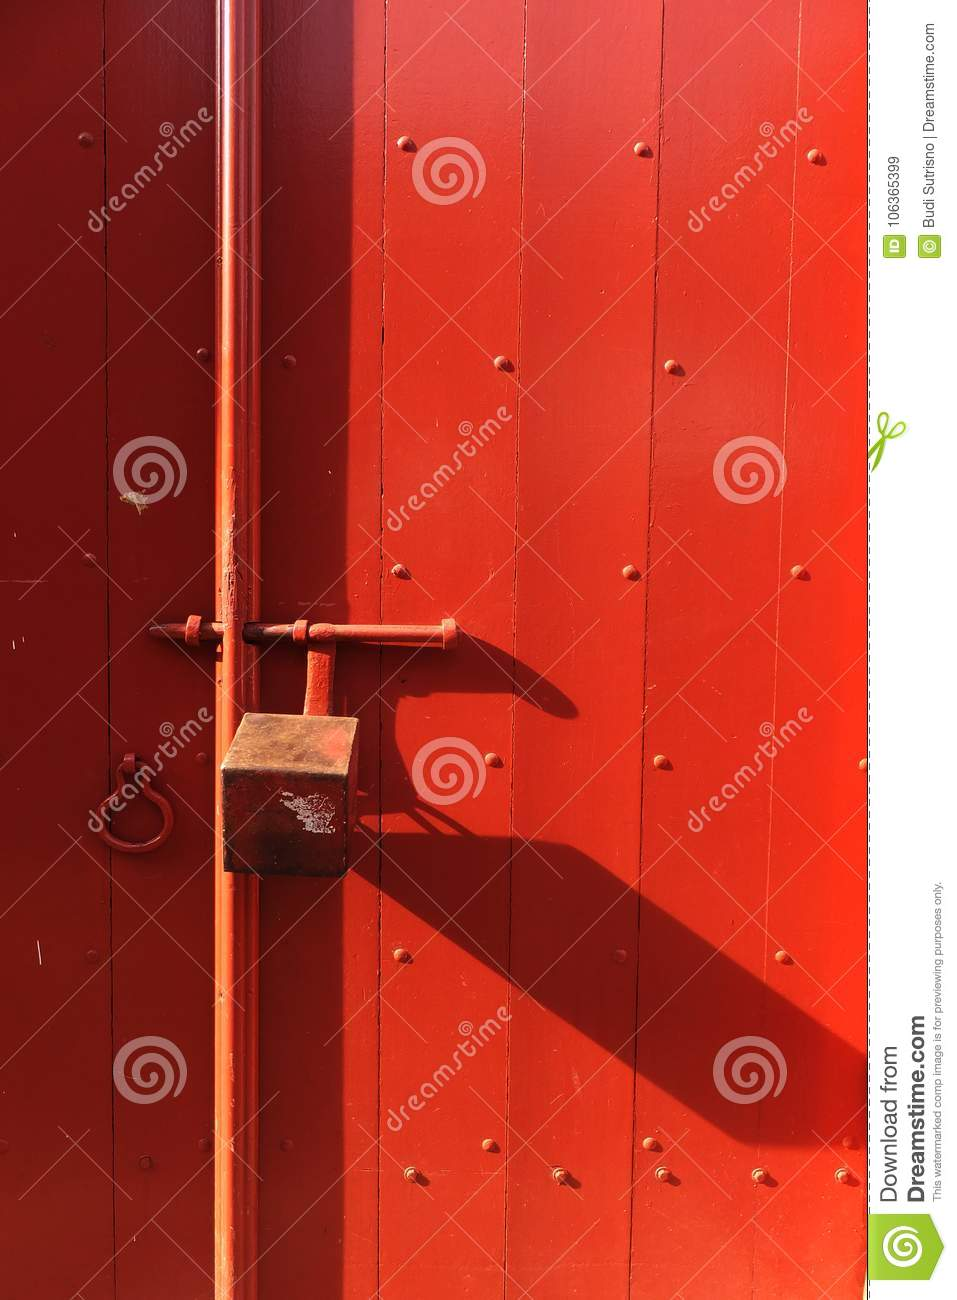 A Red Door Locked The Beauty Of The Old Design Stock Image Image